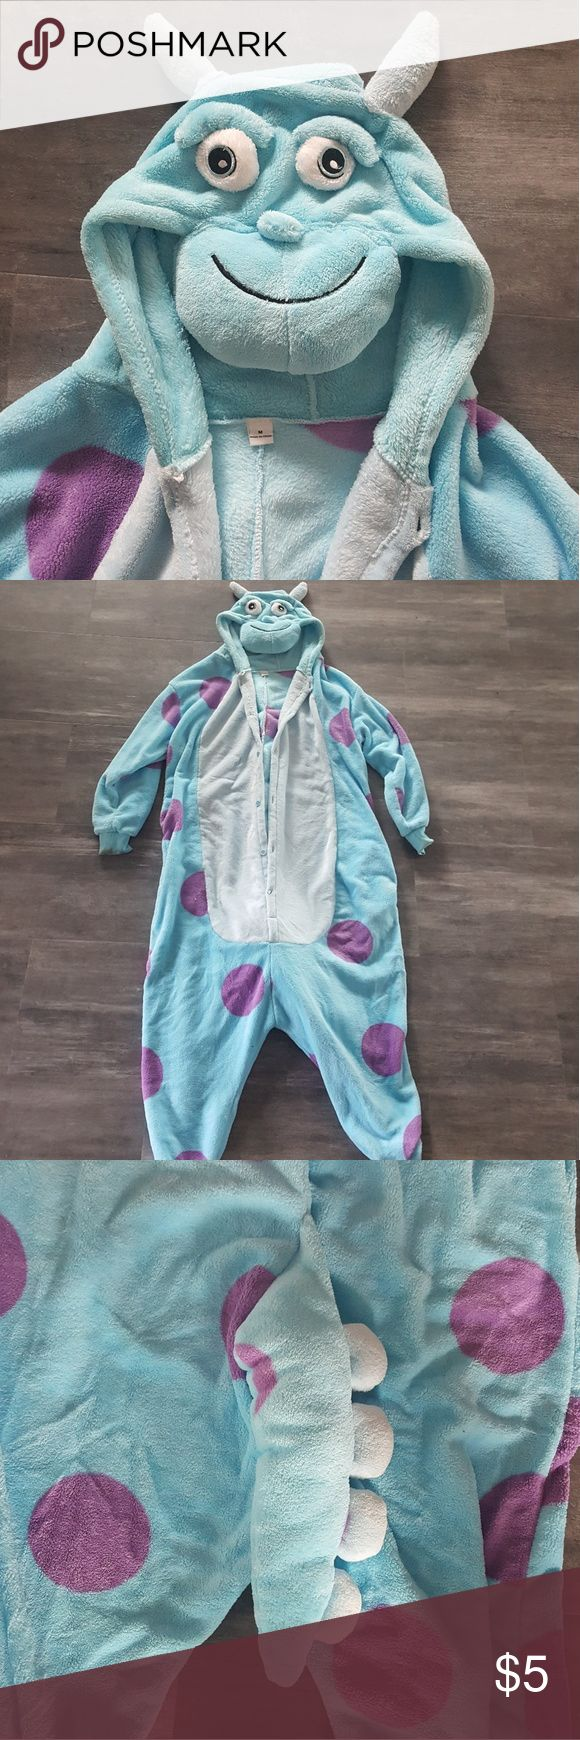 Monsters Inc Sully Onesie Sully From Monsters Inc Onesie monster high Intimates & Sleepwear Pajamas